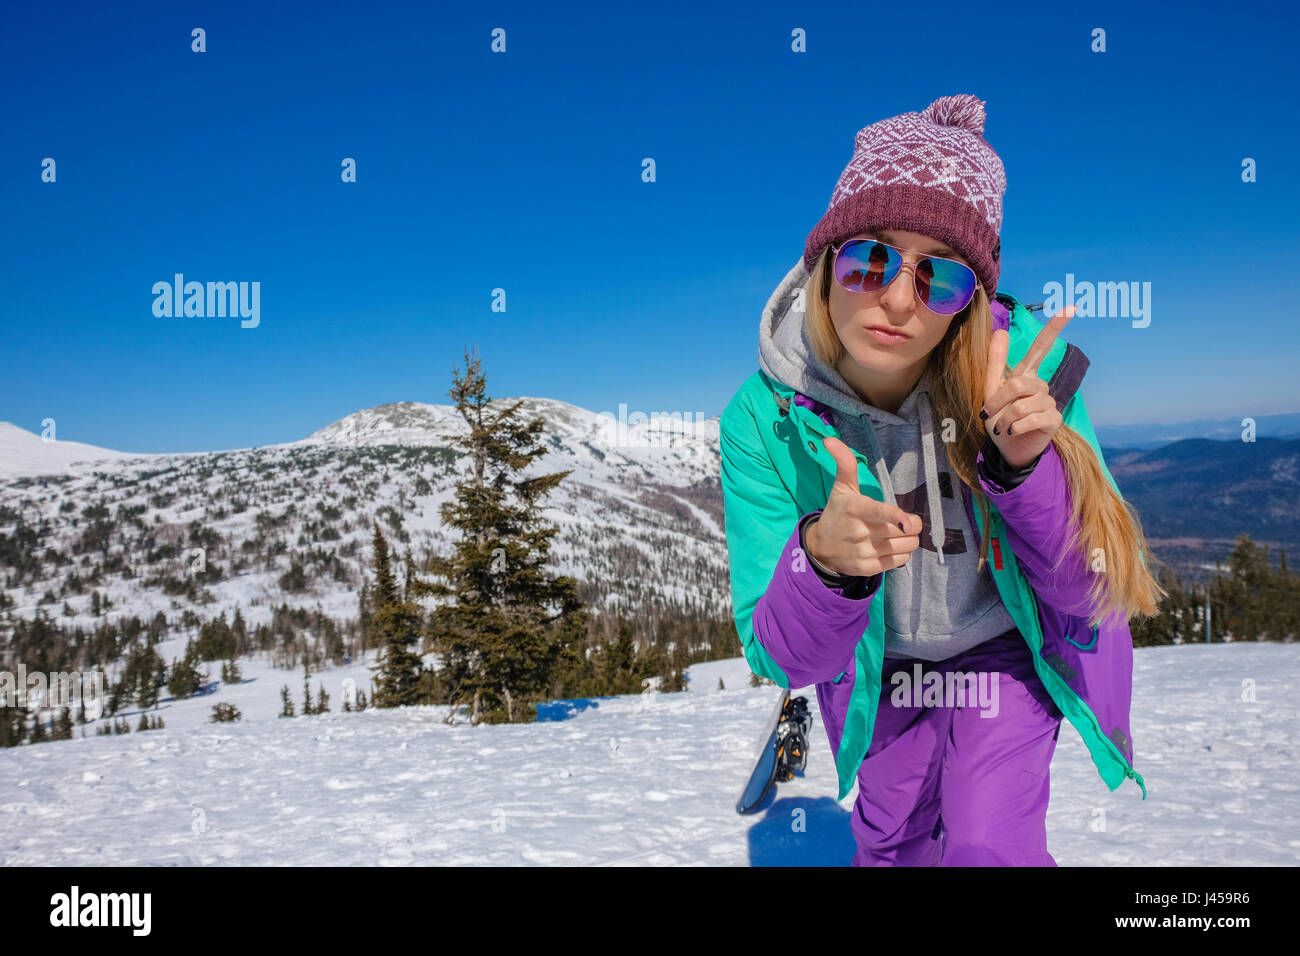 Successful young girl snowboarding in the mountains Sheregesh. Snowboarder resting.  Stylish caucasian snowboarder.Snowboarder - Stock Image